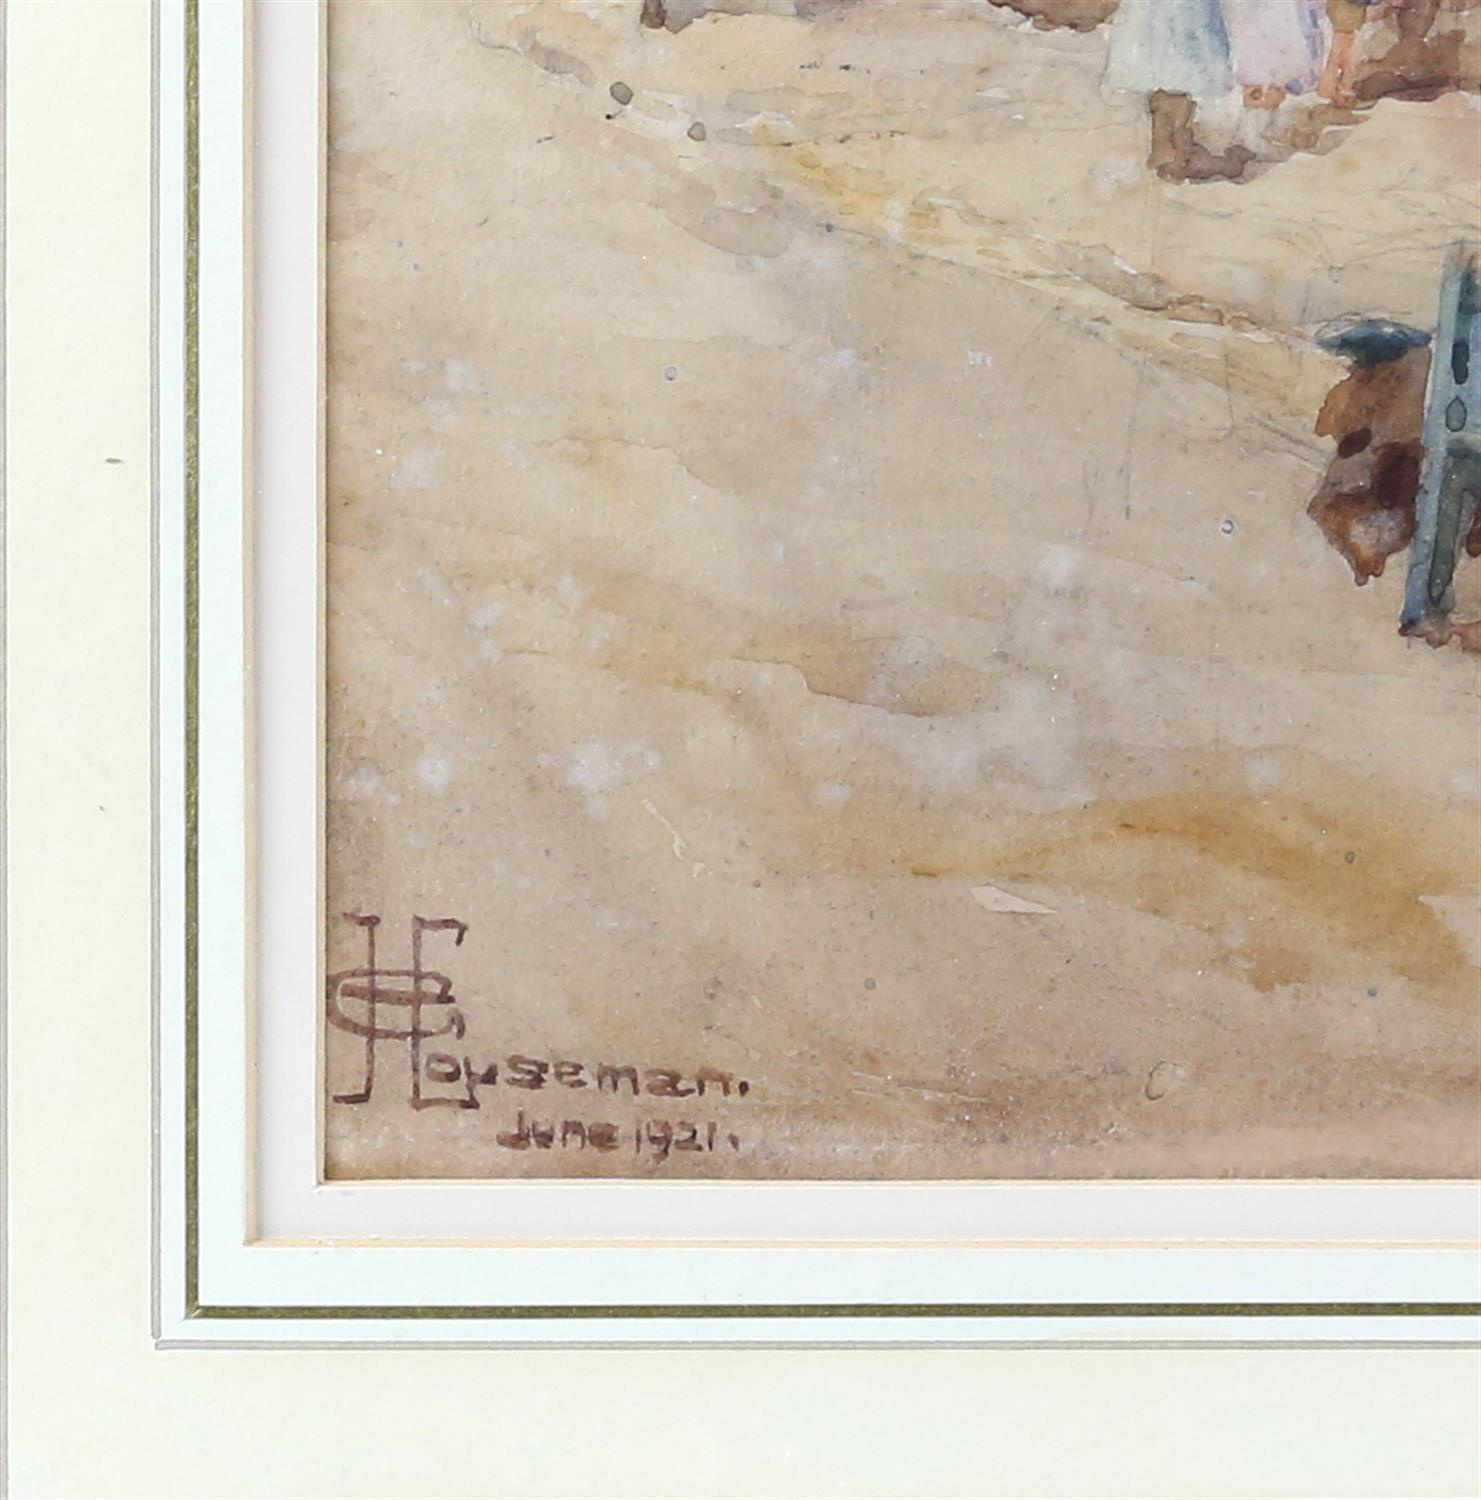 G. Houseman, 20th century, street scene with figures and barrow, signed and dated June 1921, - Image 3 of 4